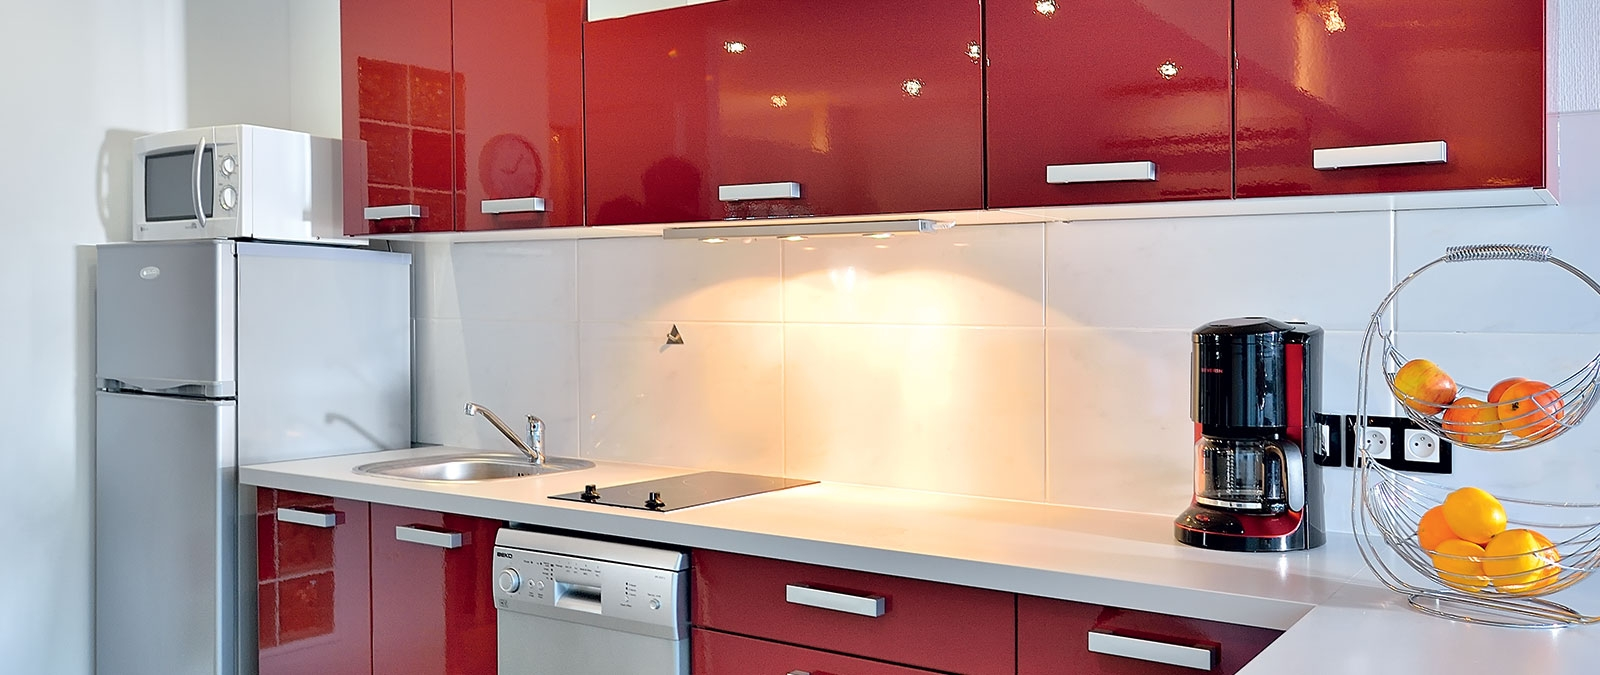 Equipped kitchen Paradis libertine stay